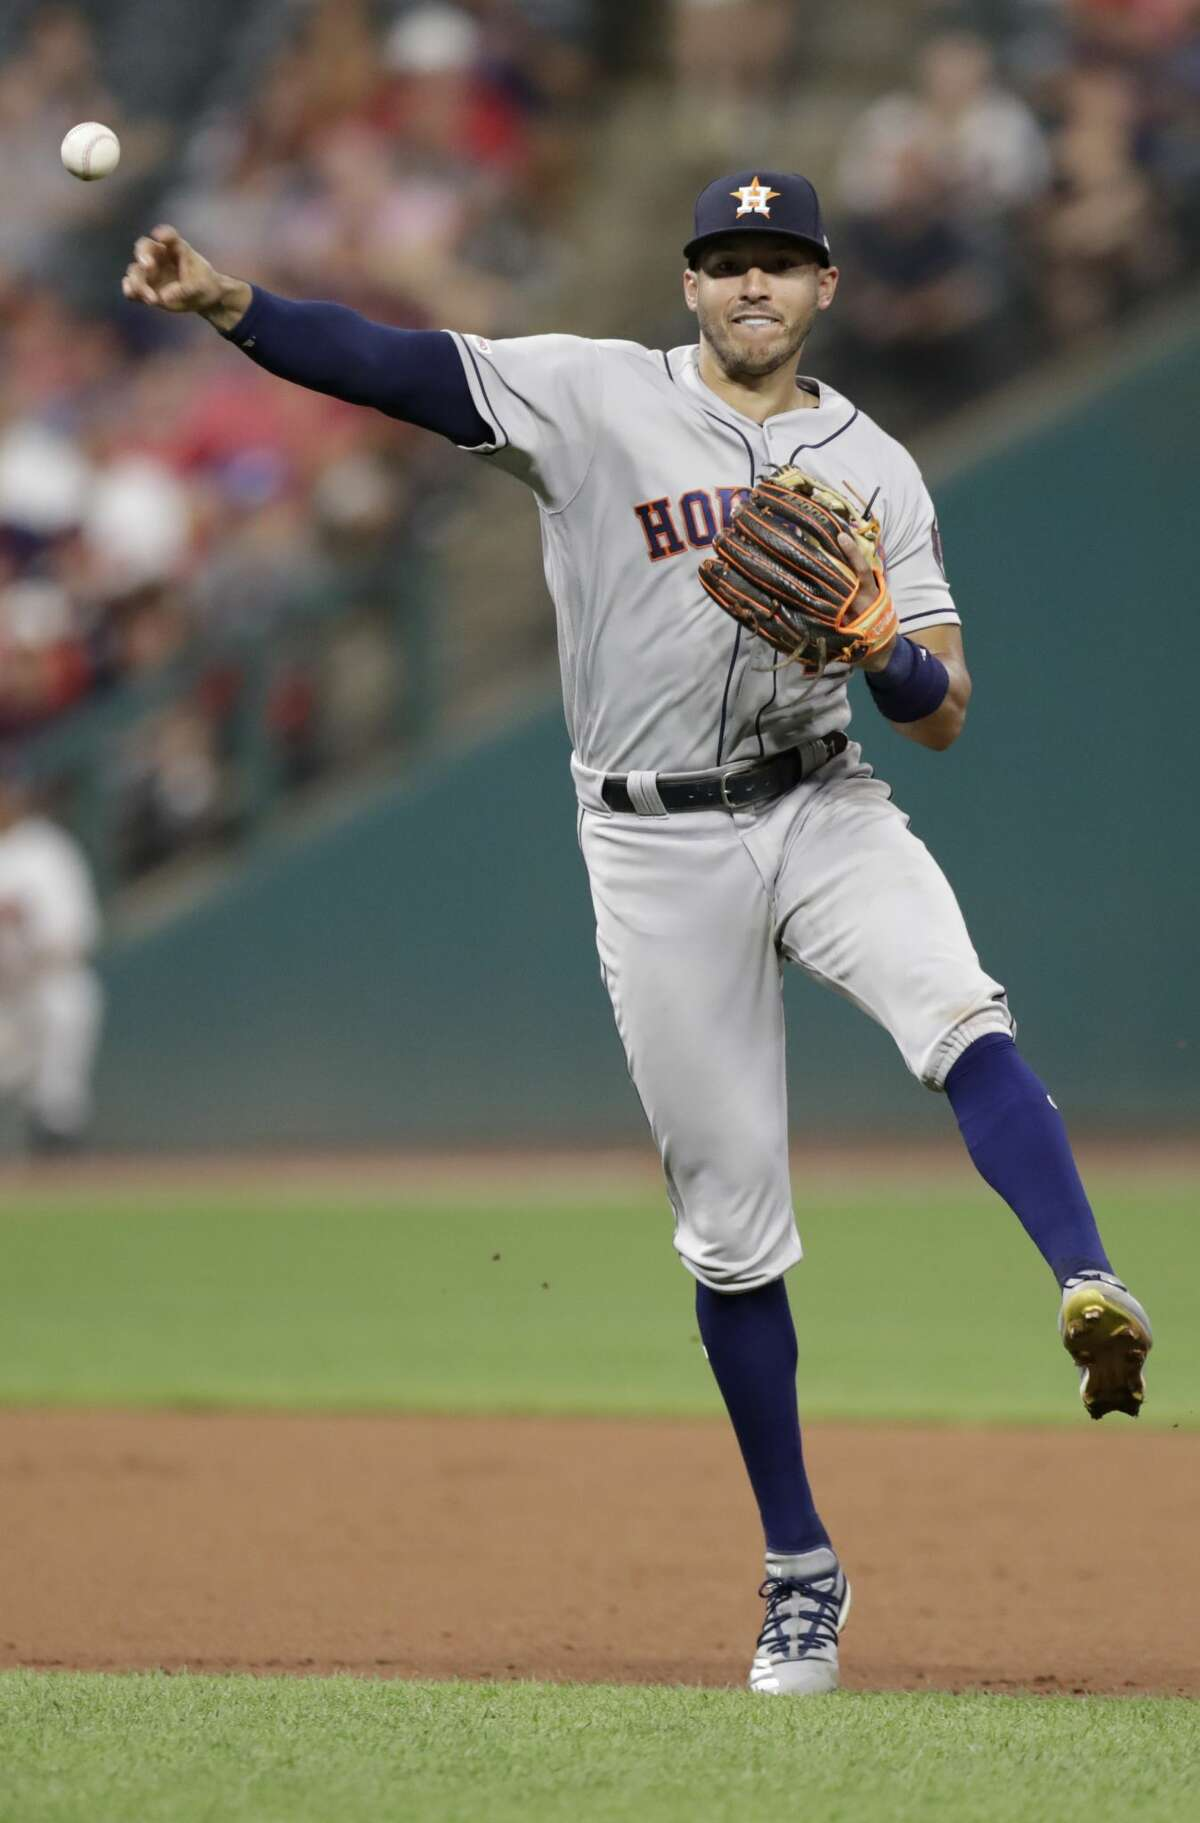 Houston Astros Carlos Correa throws out Cleveland Indians' Oscar Mercado at first base in the ninth inning of a baseball game, Tuesday, July 30, 2019, in Cleveland. The Astros won 2-0. (AP Photo/Tony Dejak)